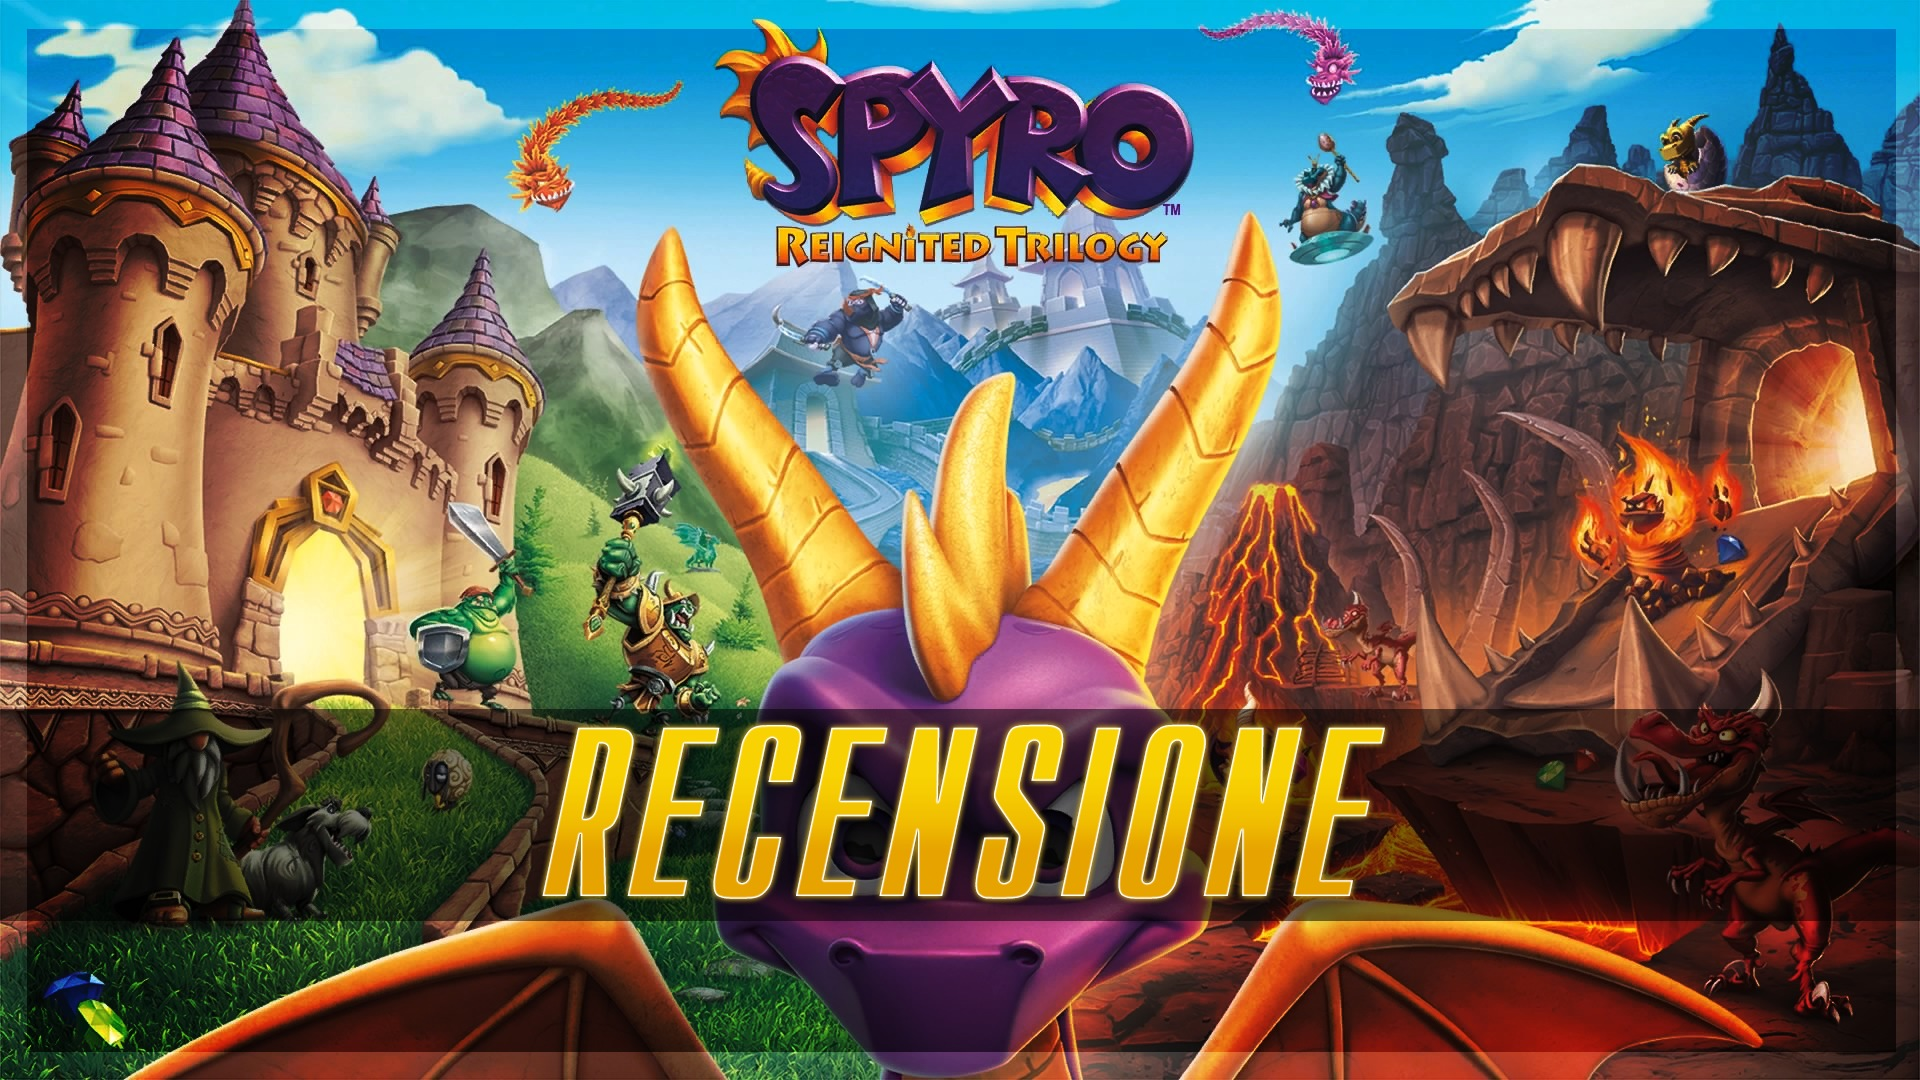 Spyro Reignited Trilogy Nintendo Switch Review Let S Talk About Video Games